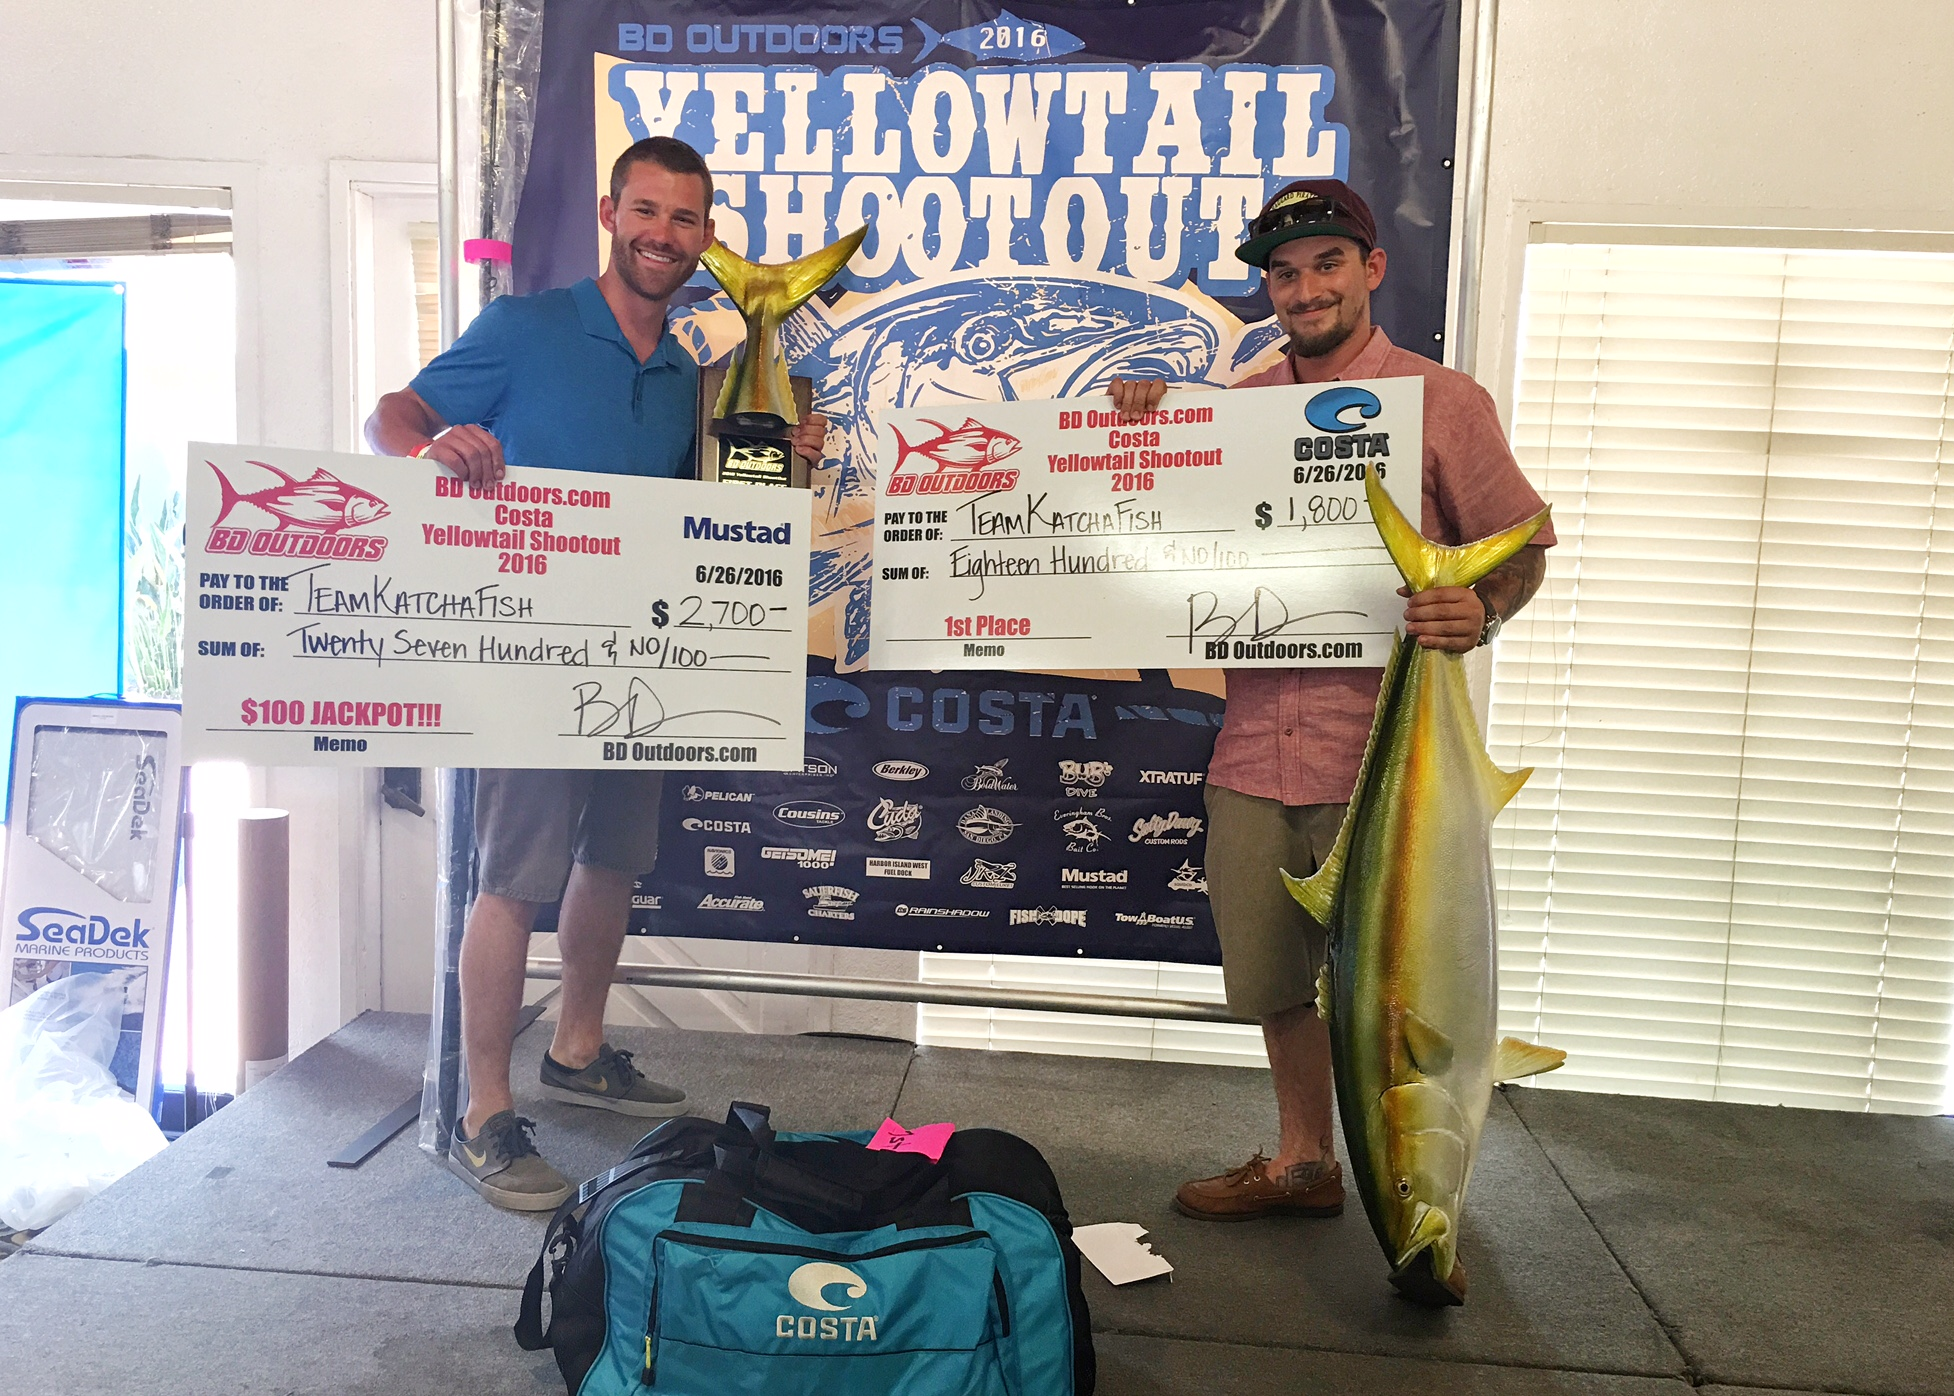 yellowtail shootout